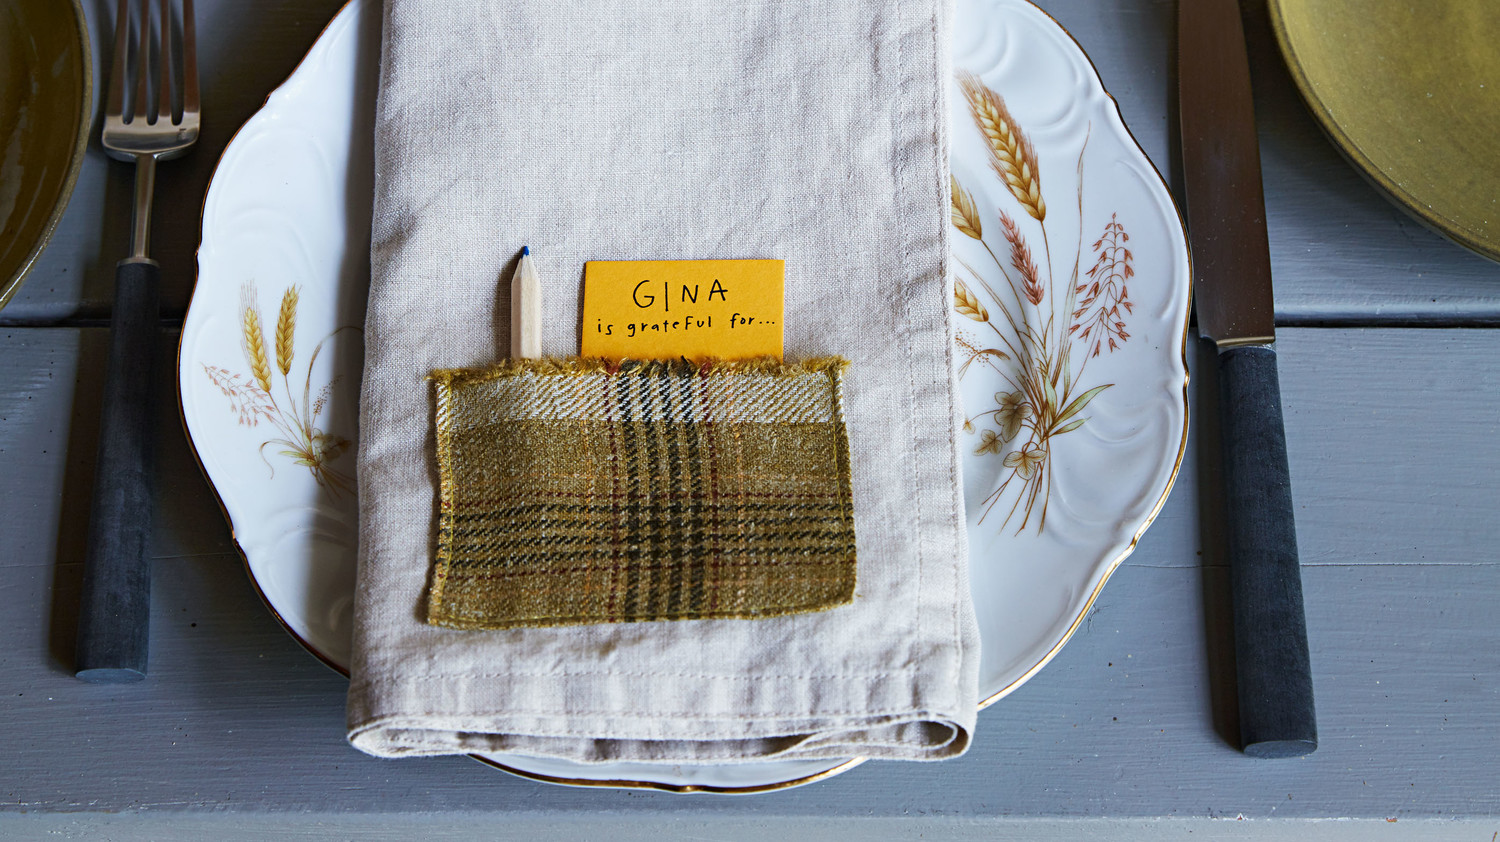 Patch-Pocket Napkin with Gratitude Place Card